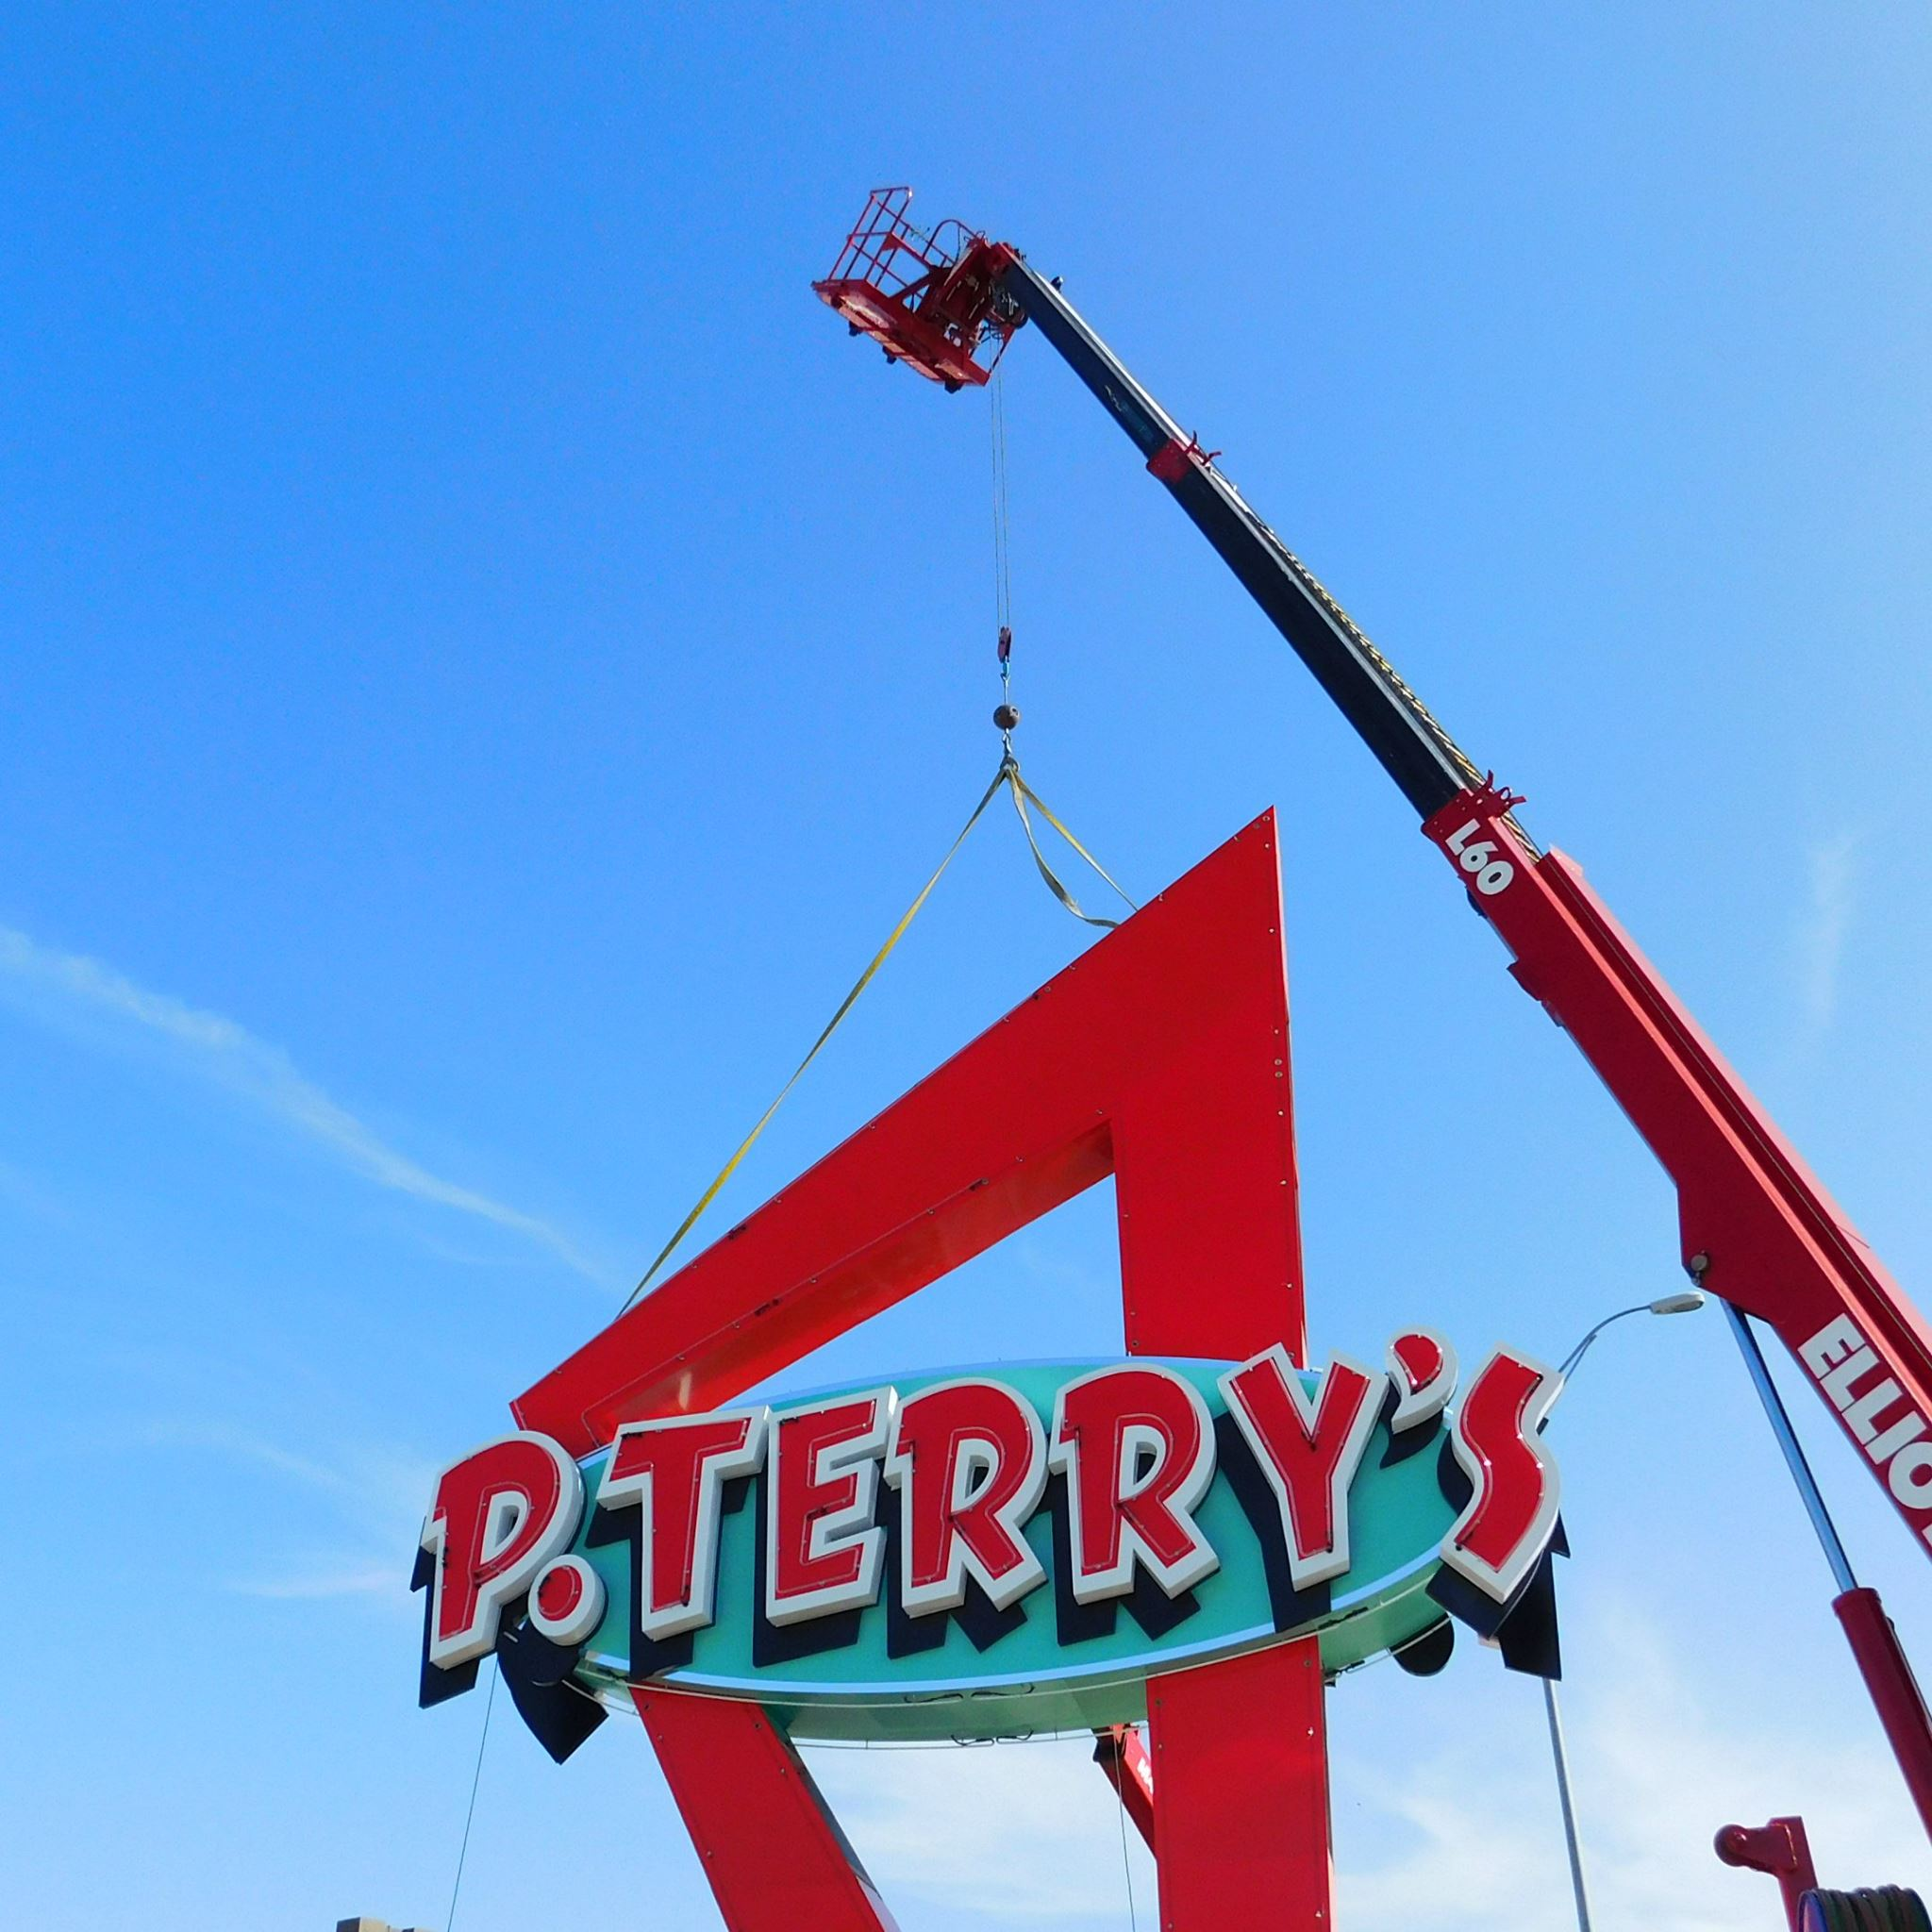 P. Terry's signage at Capital Plaza